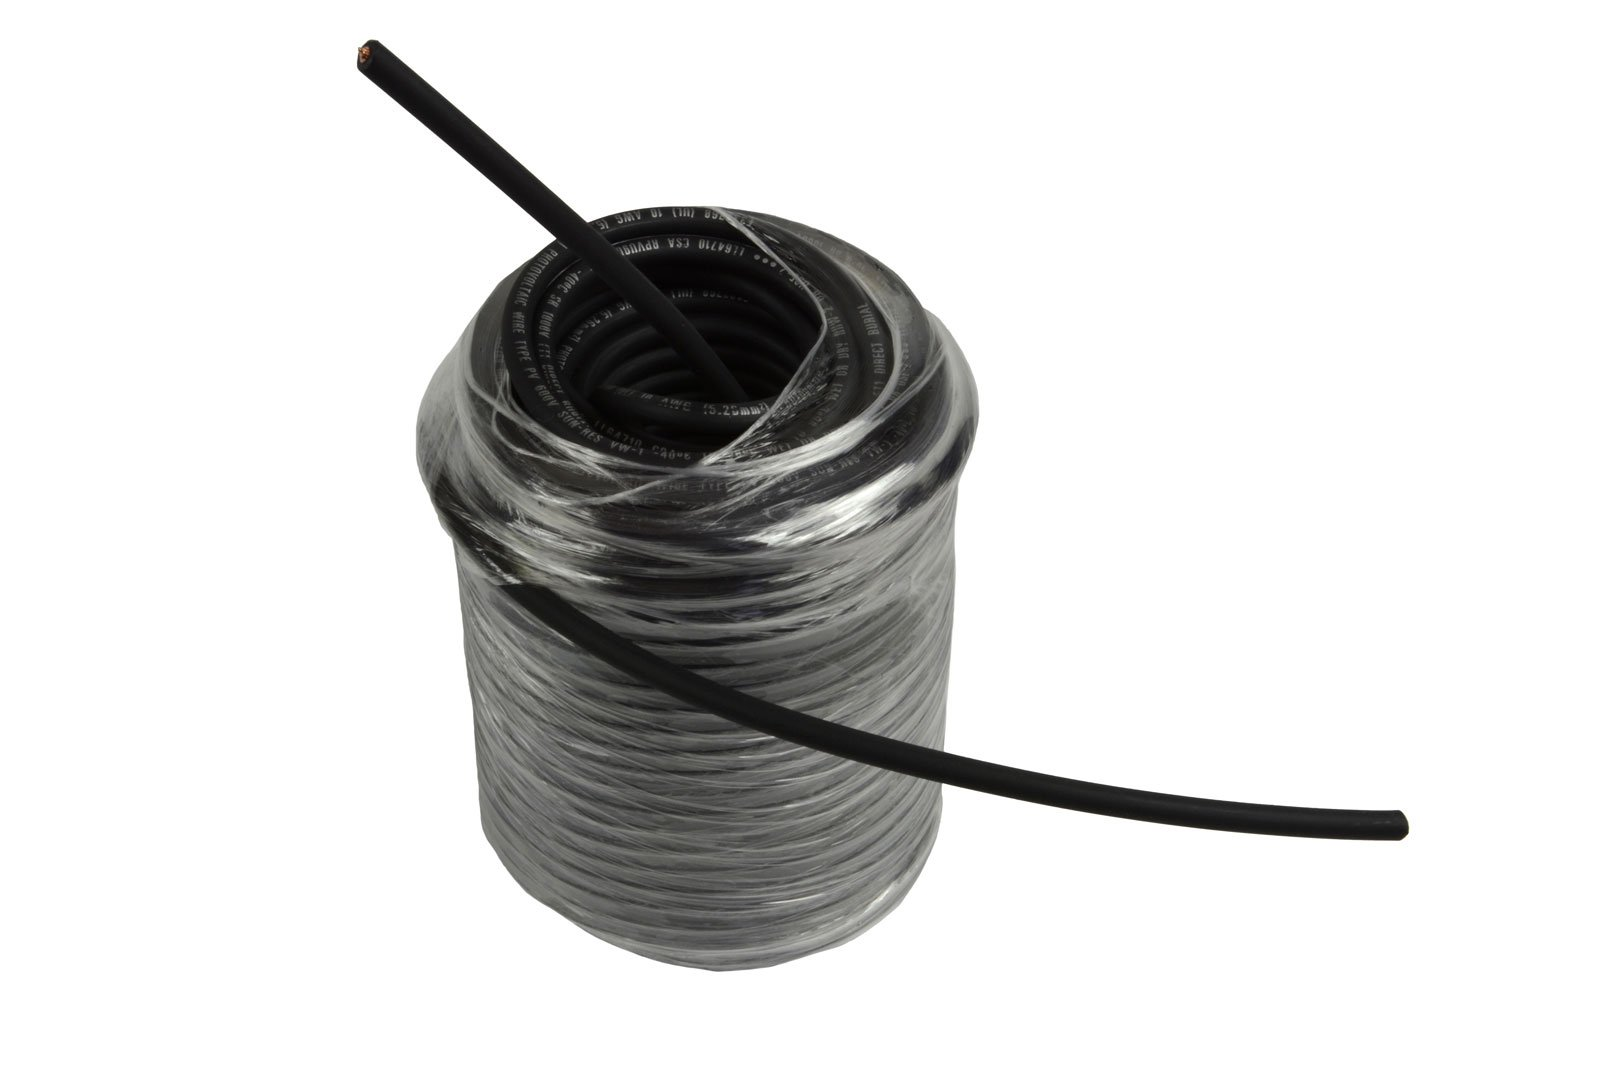 Temco 10 AWG Solar Panel Wire 250' Power Cable Black UL 4703 Copper Made in USA PV Gauge by Temco (Image #1)